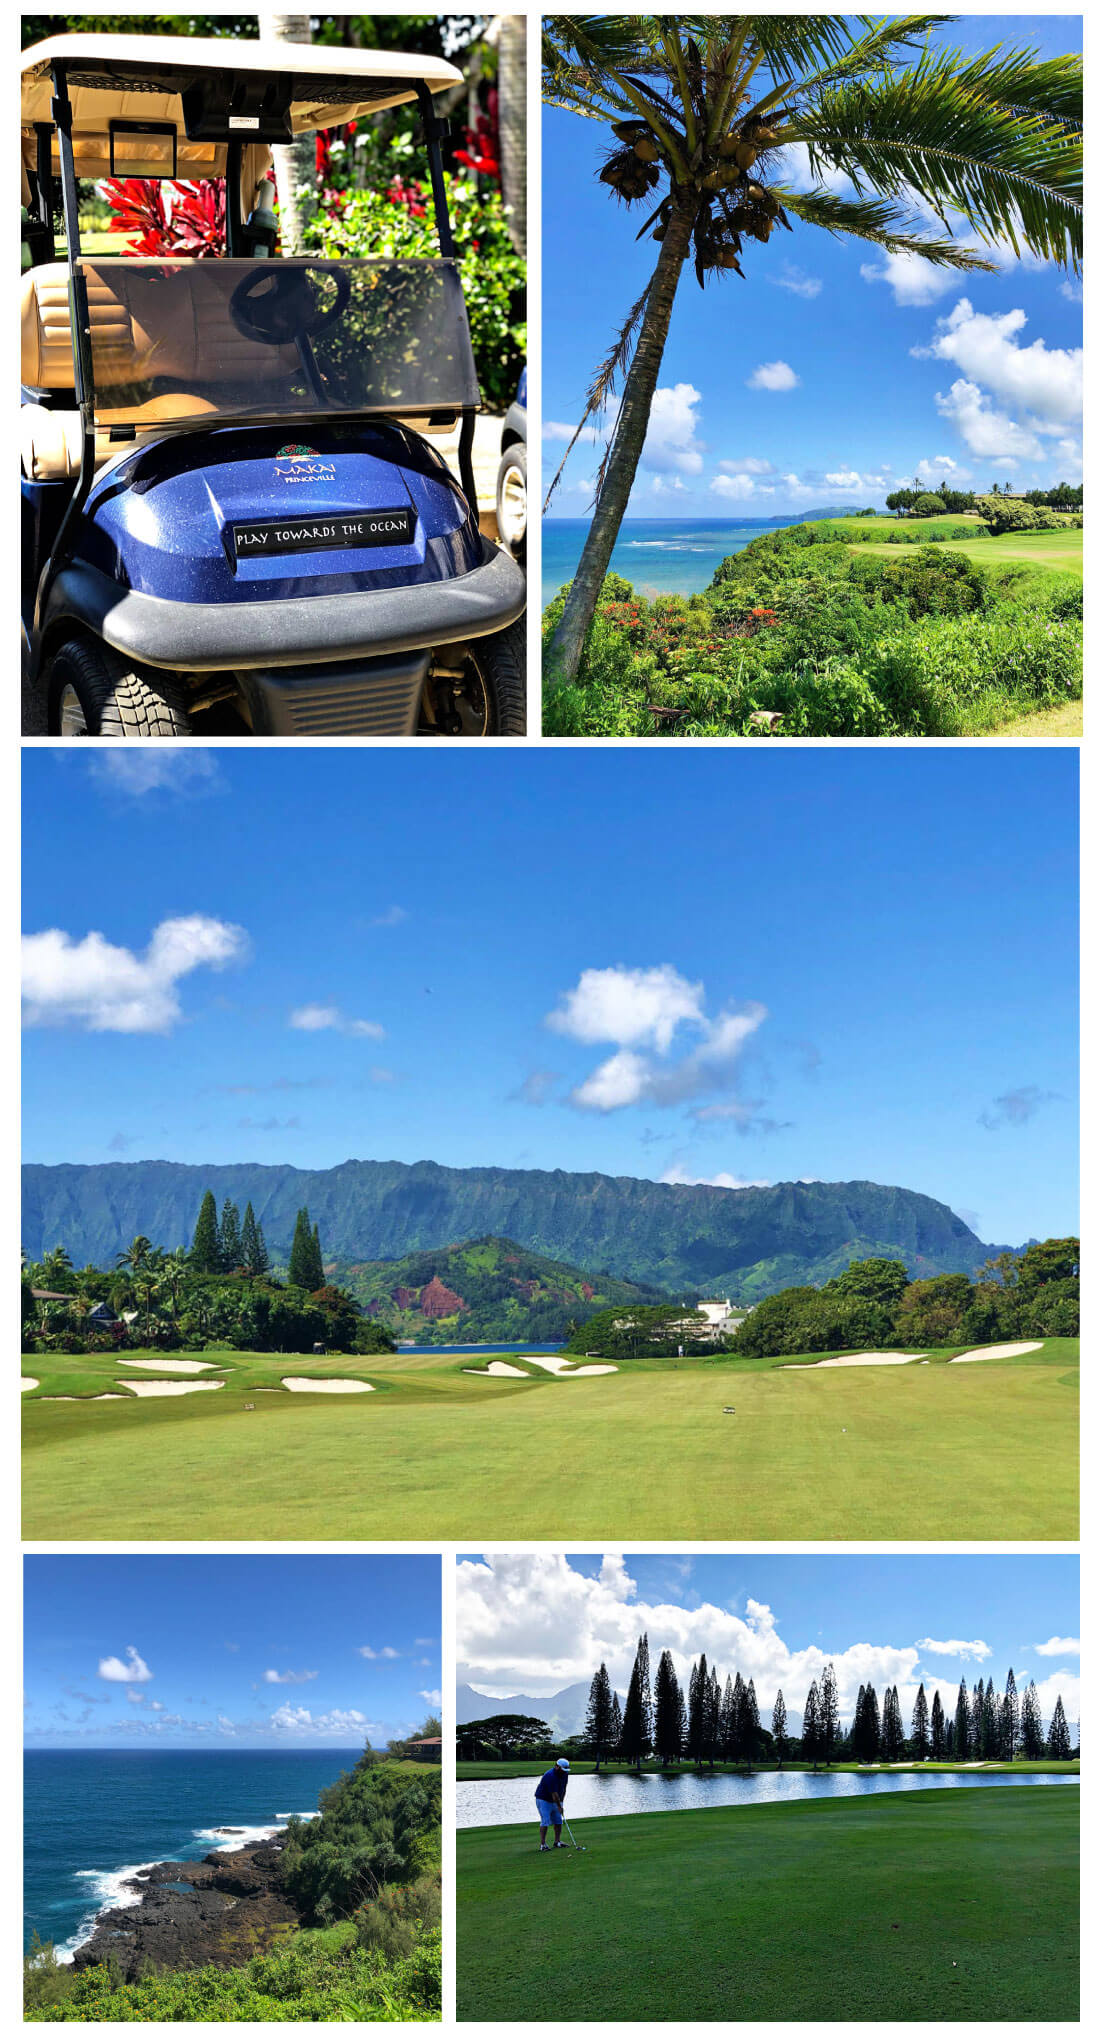 Top Things to Do in Kauai - golfing at Princeville Makai Golf Course